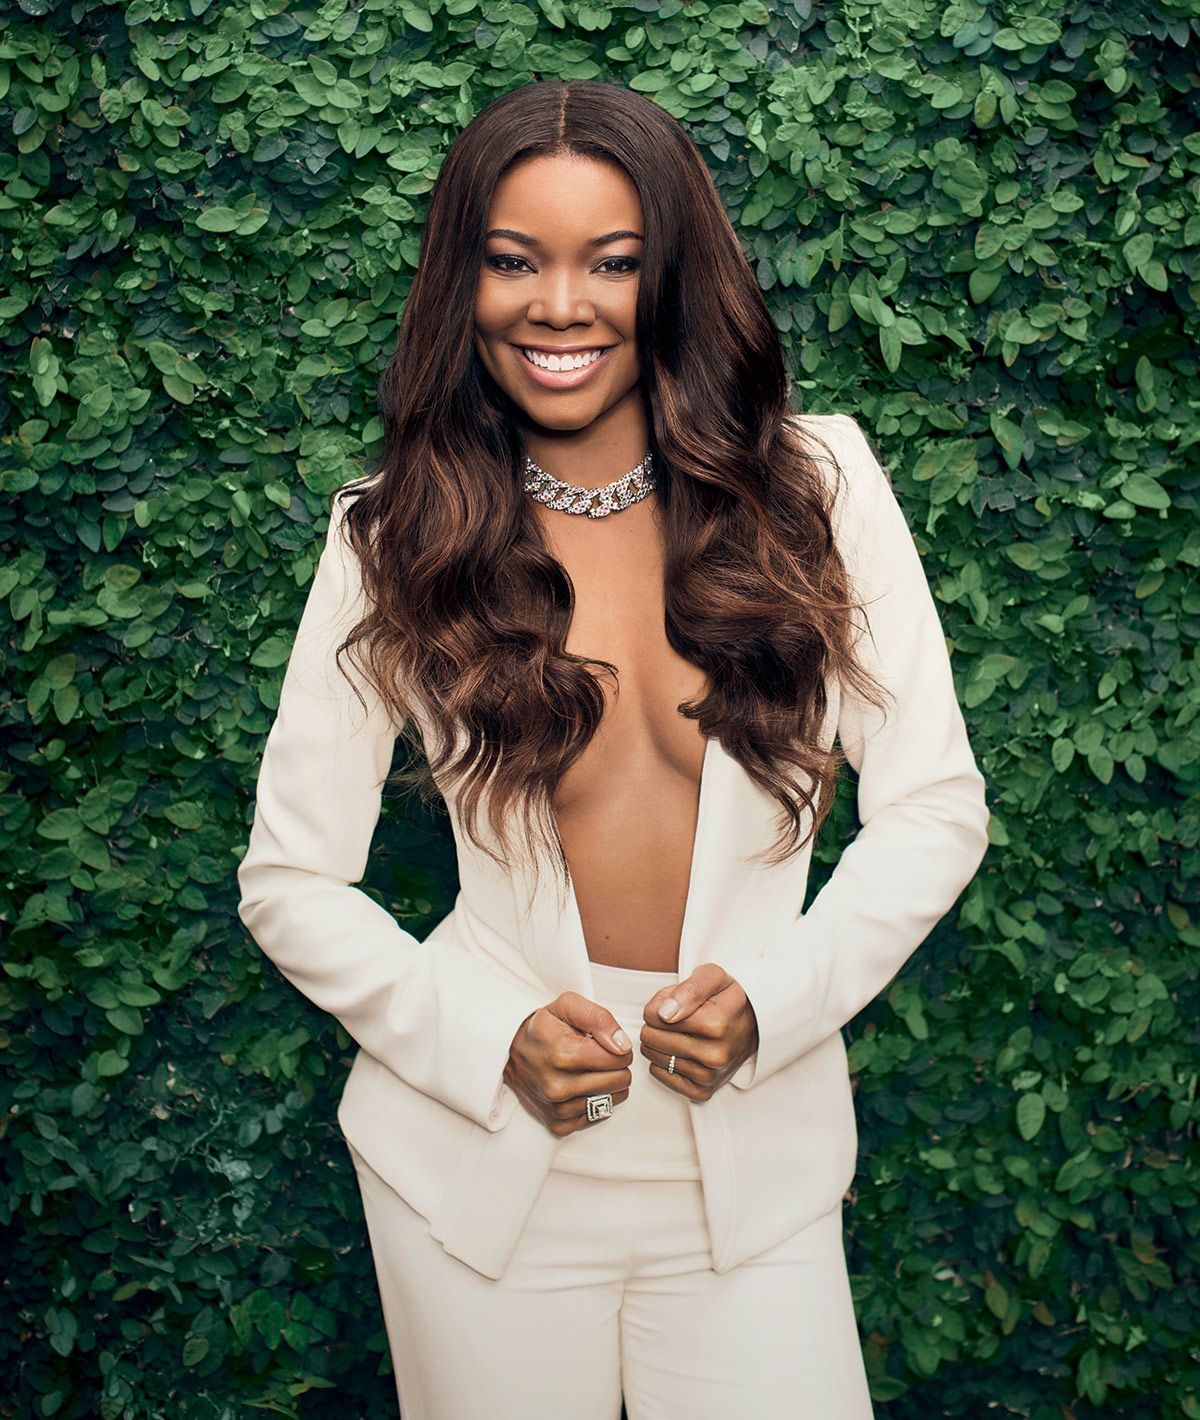 Gabrielle union for ocean drive may 2016 editorials pinterest gabrielle union for ocean drive may 2016 pmusecretfo Choice Image